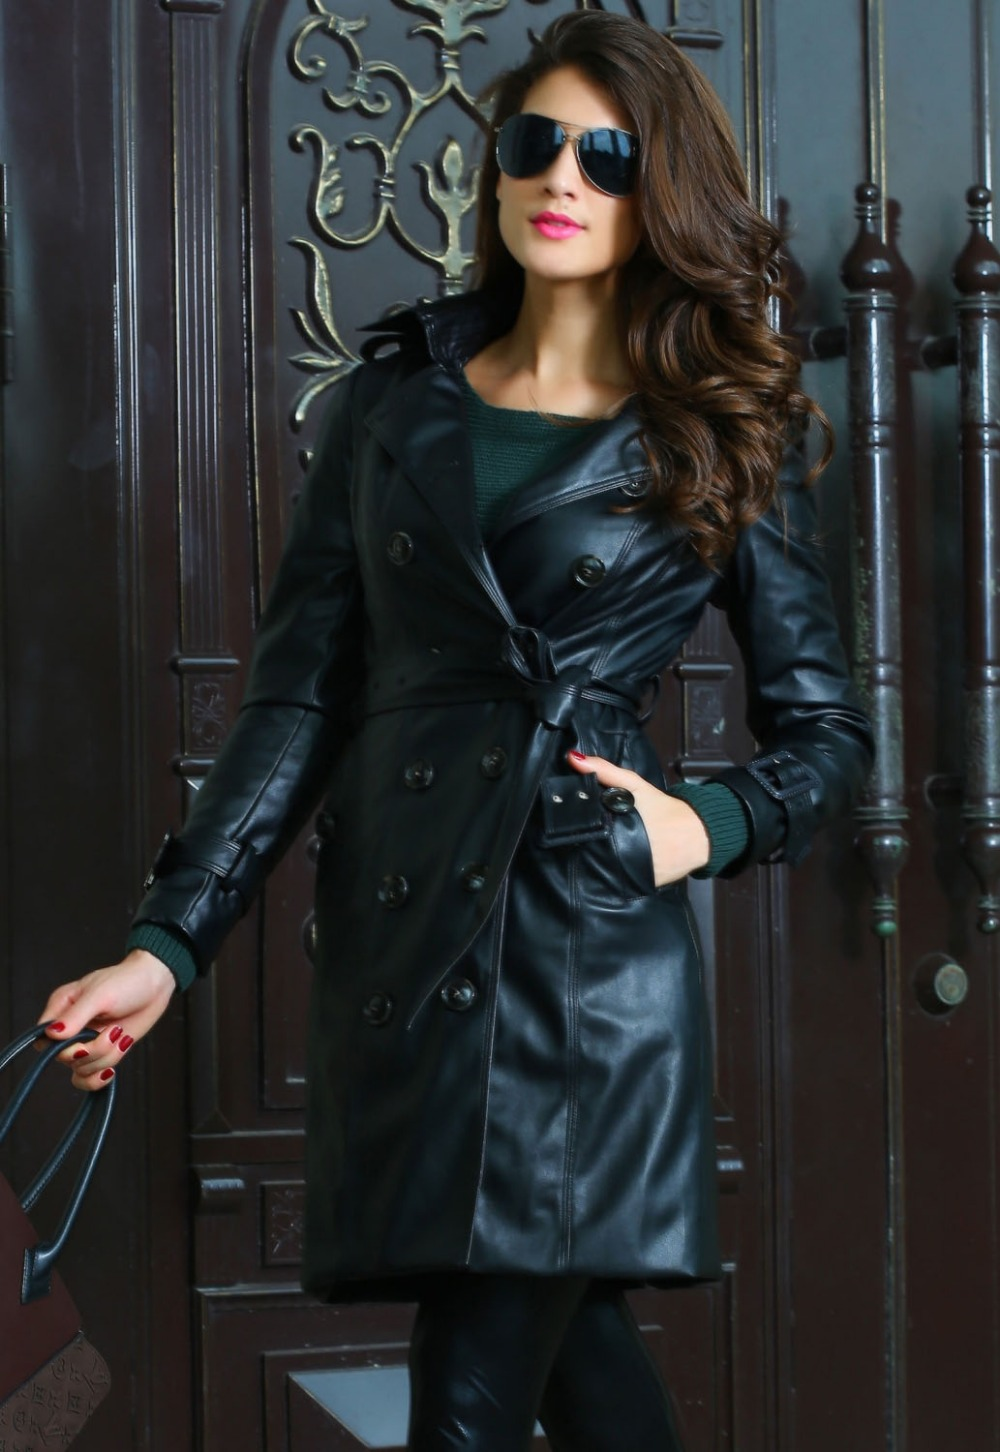 Womens long leather coats sale – Modern fashion jacket photo blog